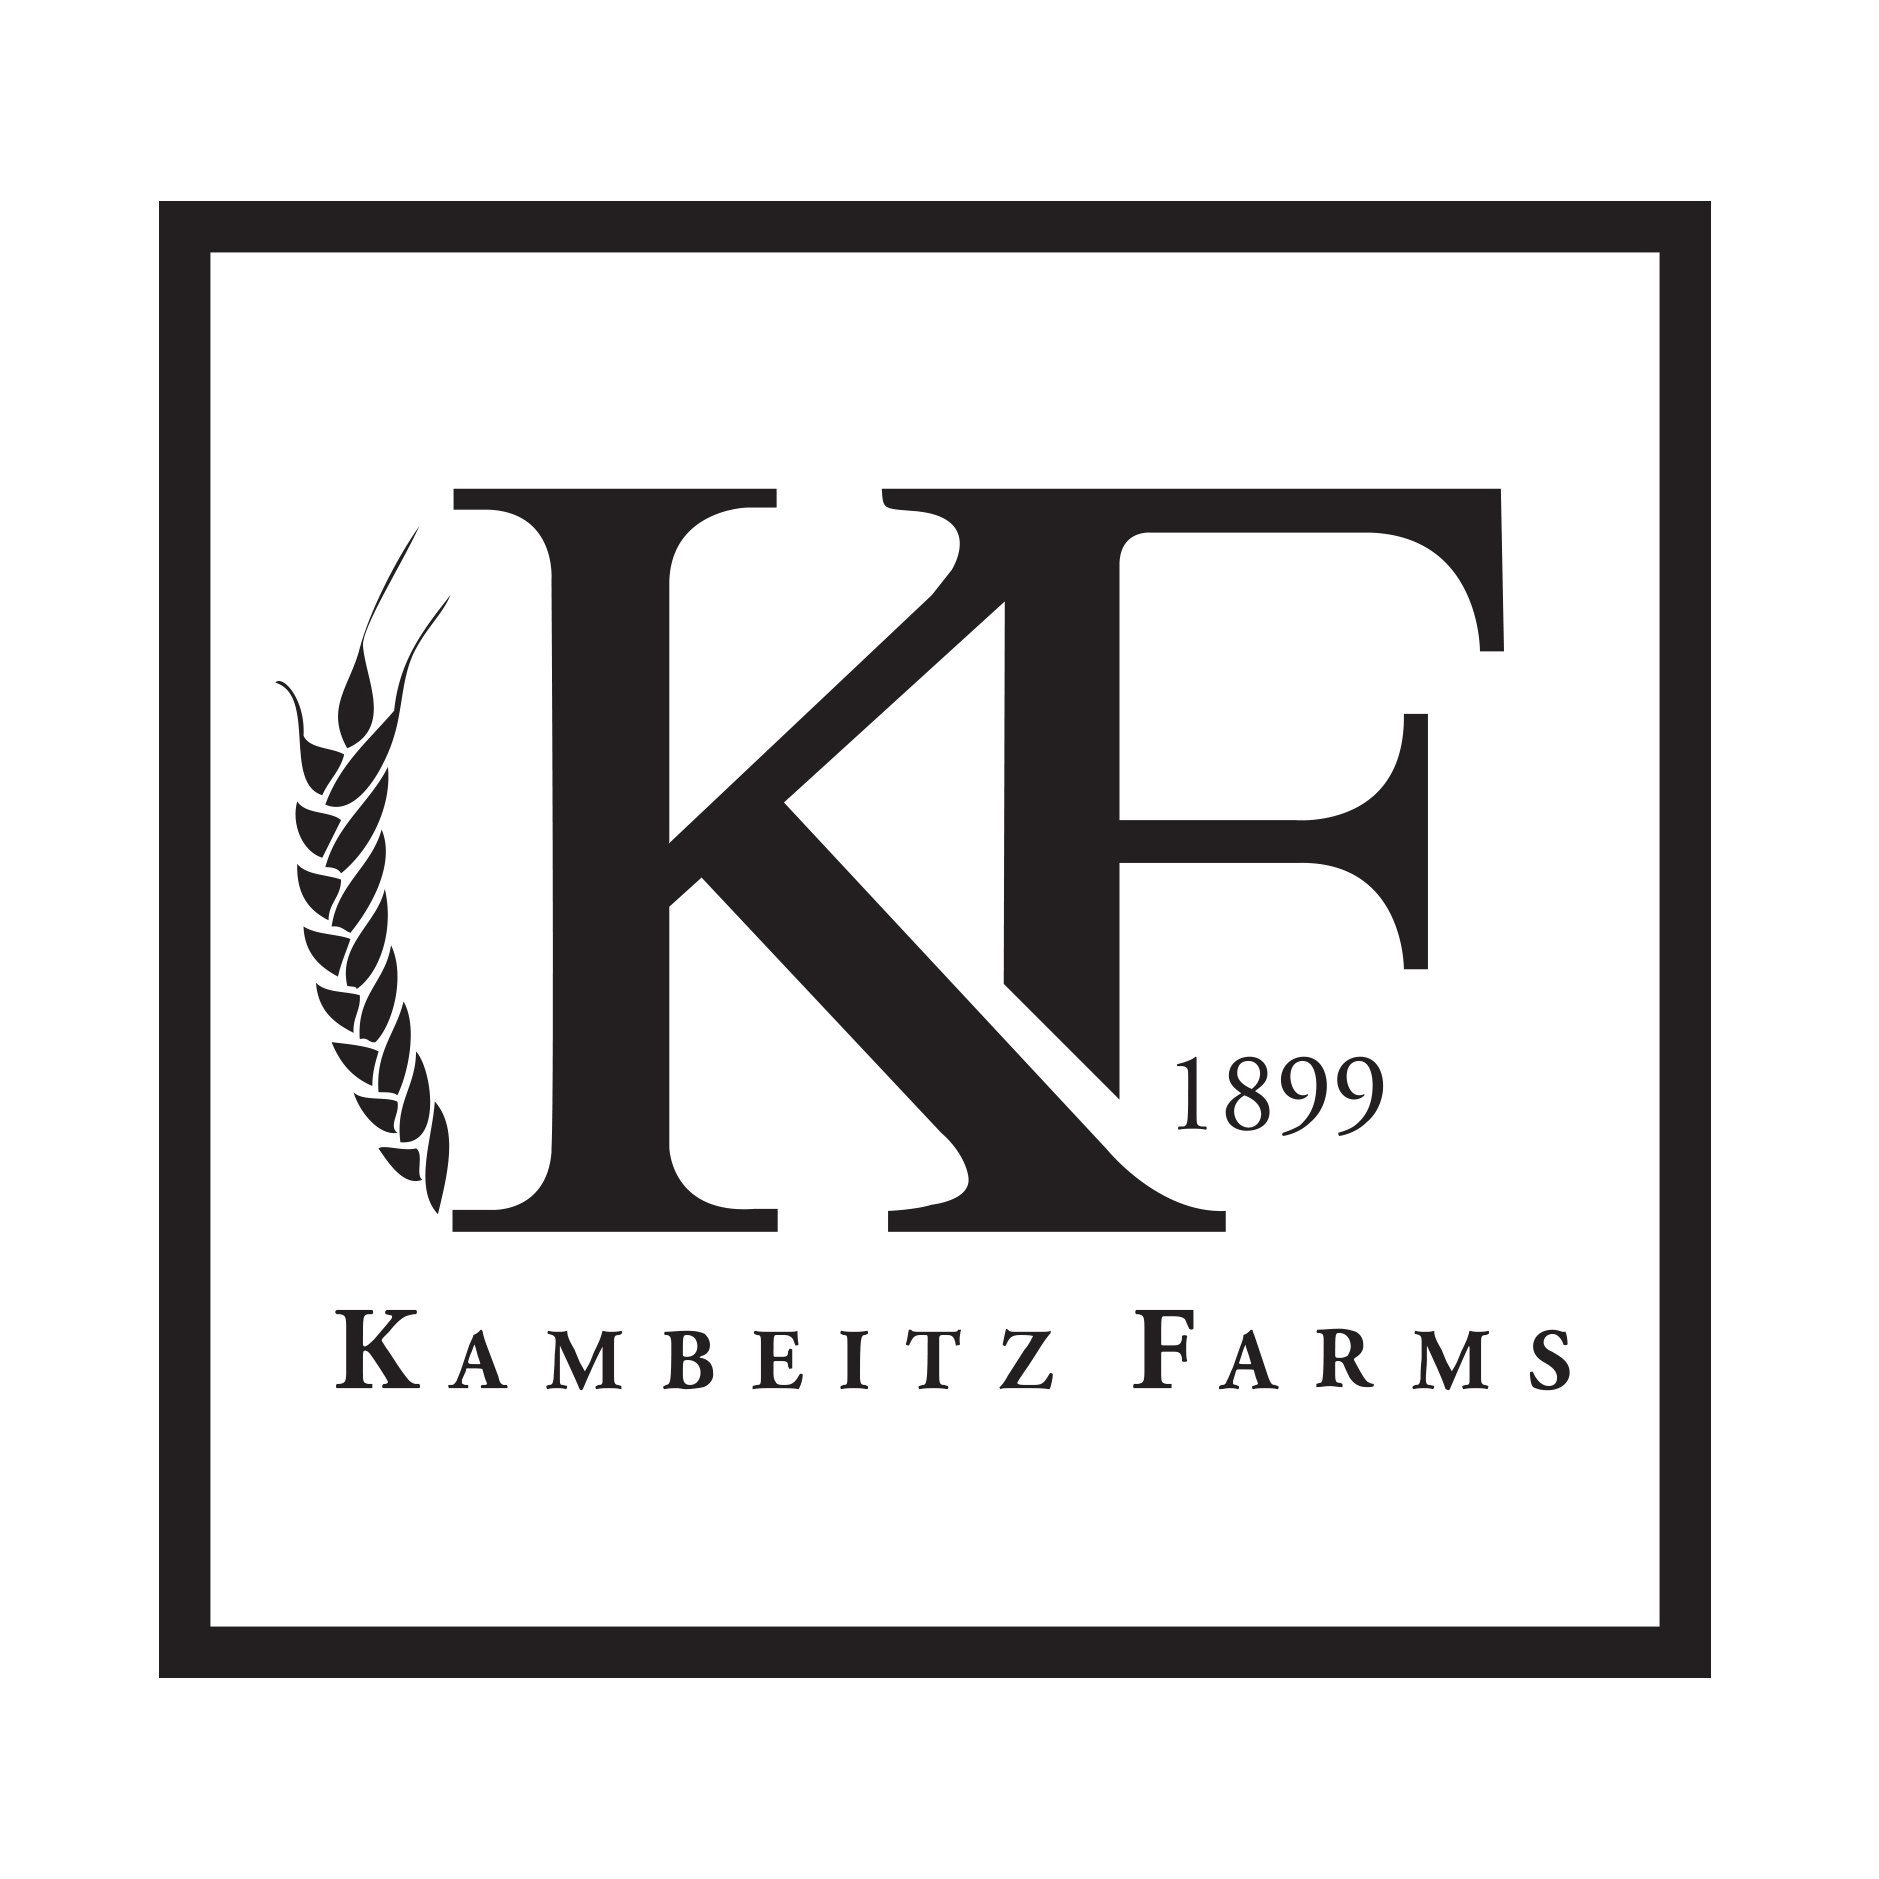 Kambeitz Farms and Purely Canada Foods